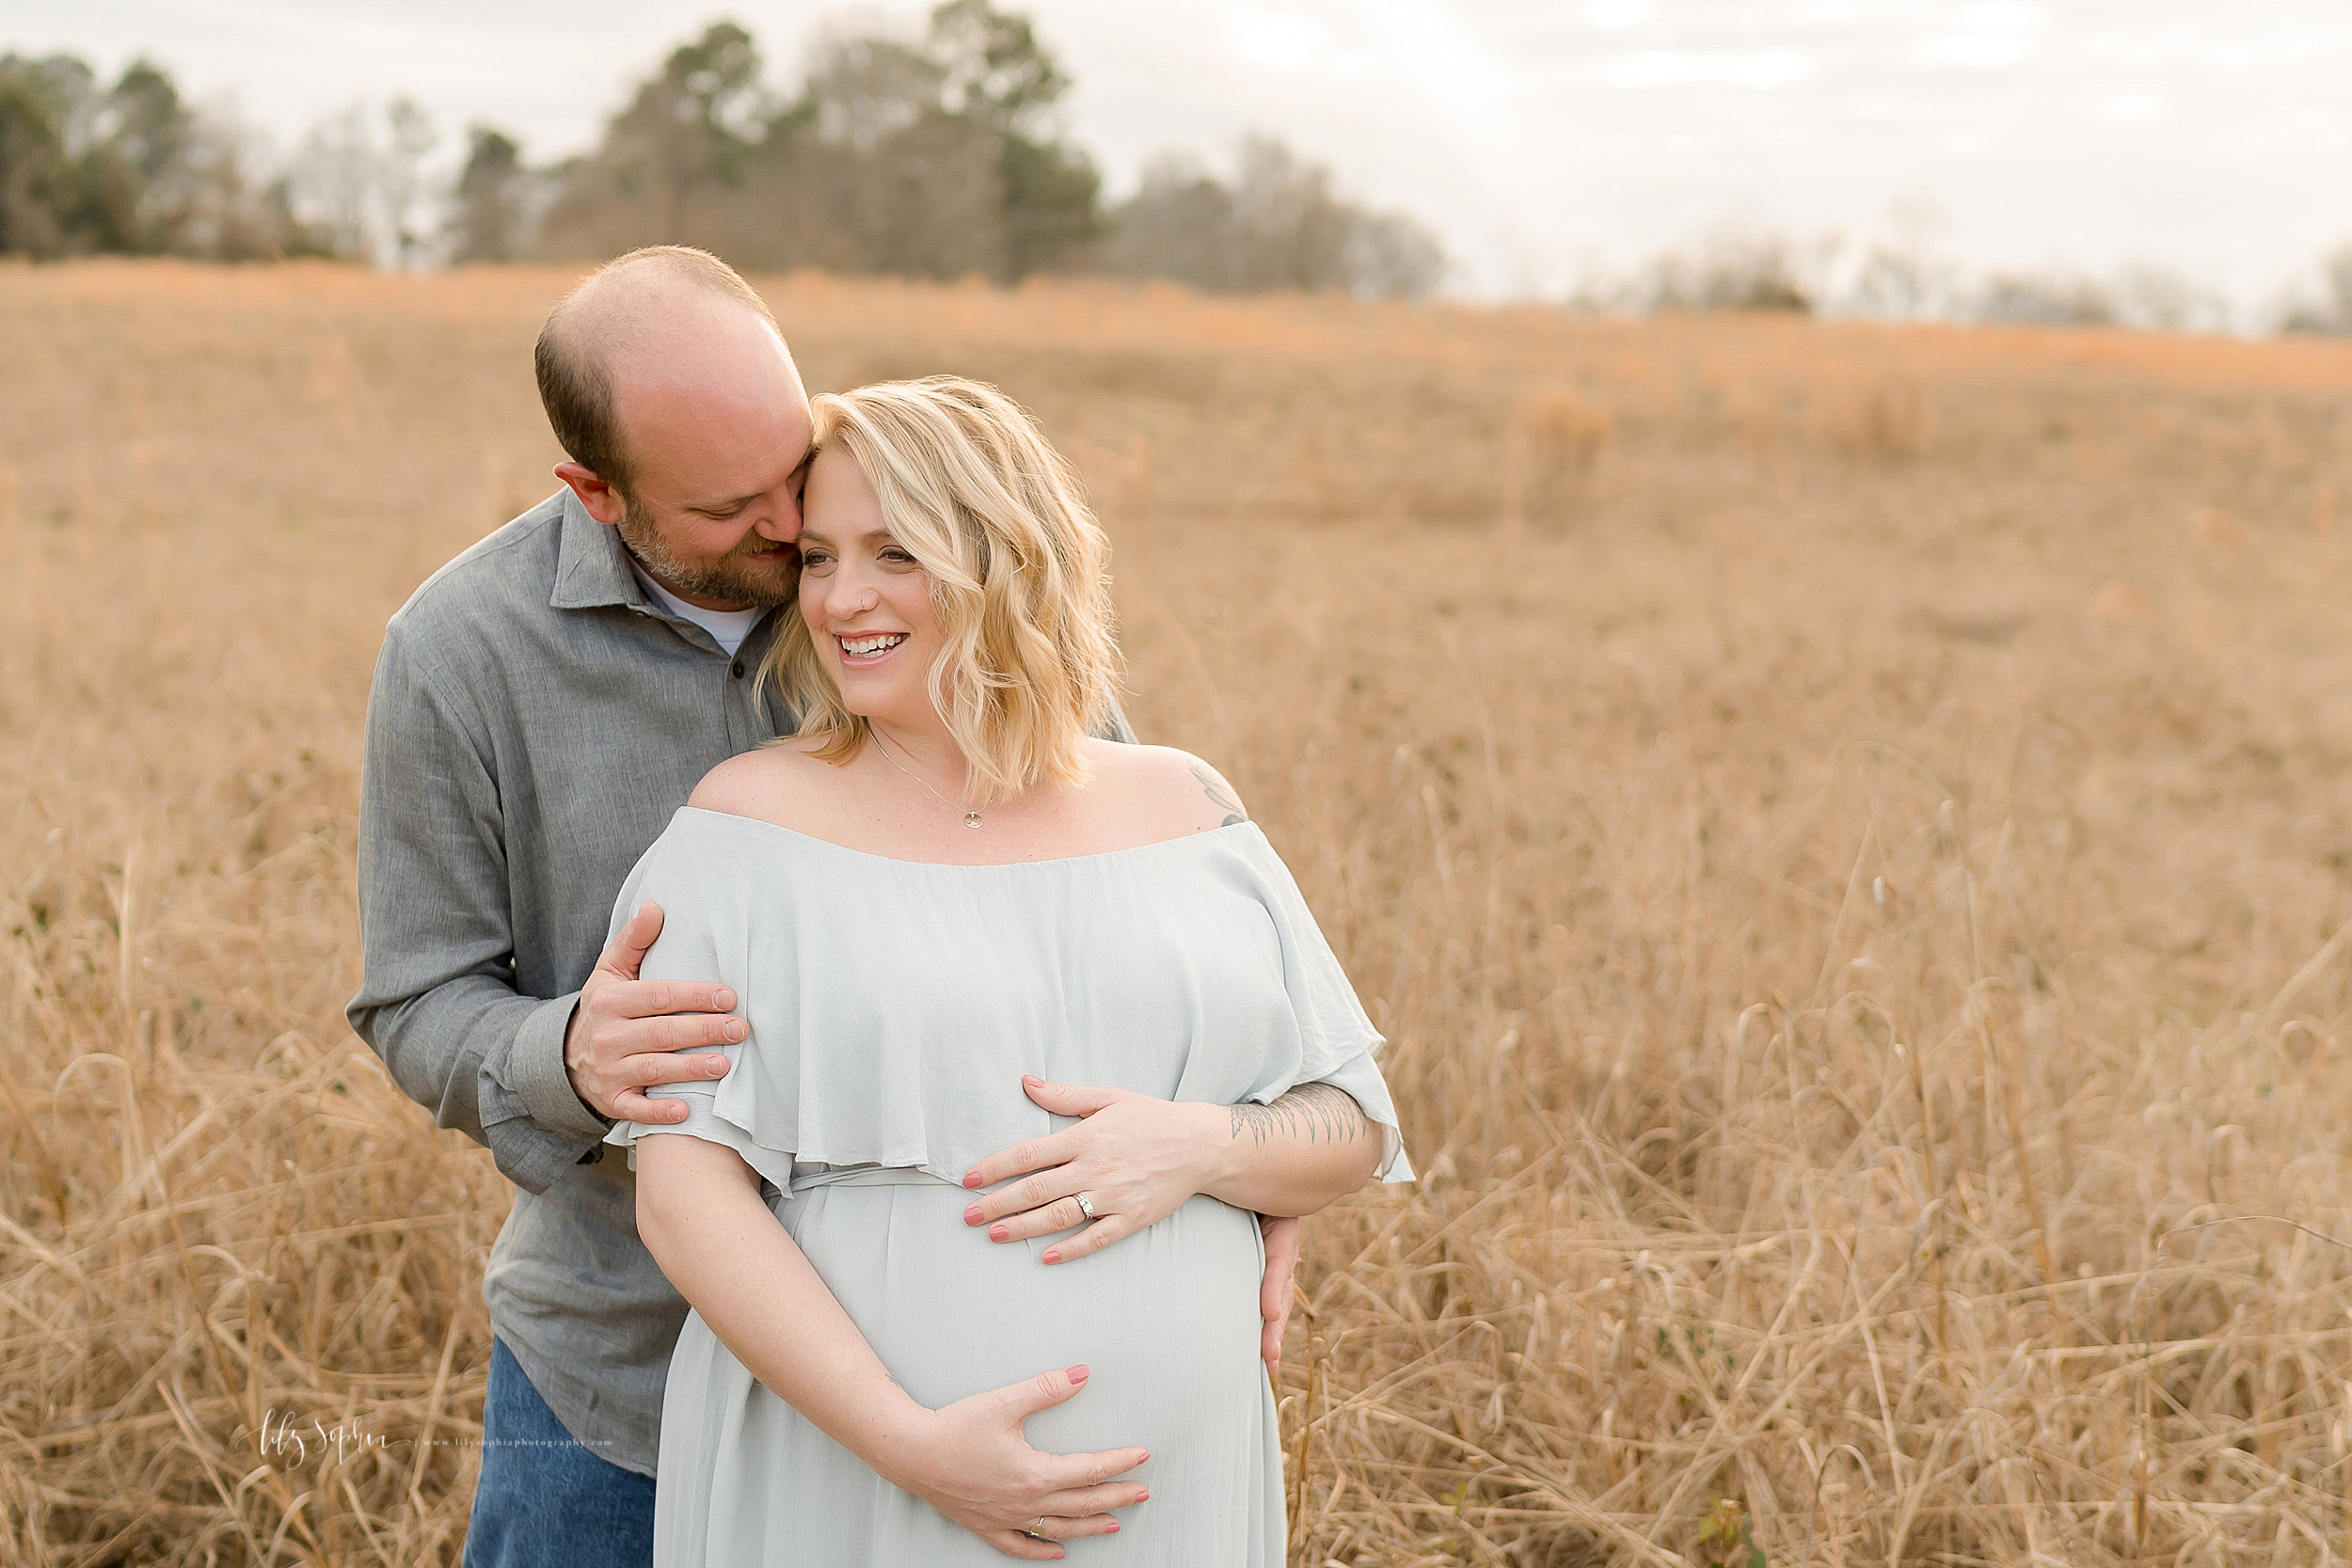 Maternity photograph of a husband and wife in a field at sunset. The bearded husband is standing behind his wife in a gray long-sleeve button down shirt and blue jeans. He has his right hand on her right upper arm and he is whispering in her ear. The blonde wife has her back to her husband and is looking over her right shoulder while holding her pregnant belly with her right arm below her belly and her left arm above her belly. She is wearing an off the shoulder short sleeve pale blue full-length flowing maternity dress and she is smiling at what her husband told her. At the neckline is a large flowing ruffle and at the empire waist is a thin fabric tie.